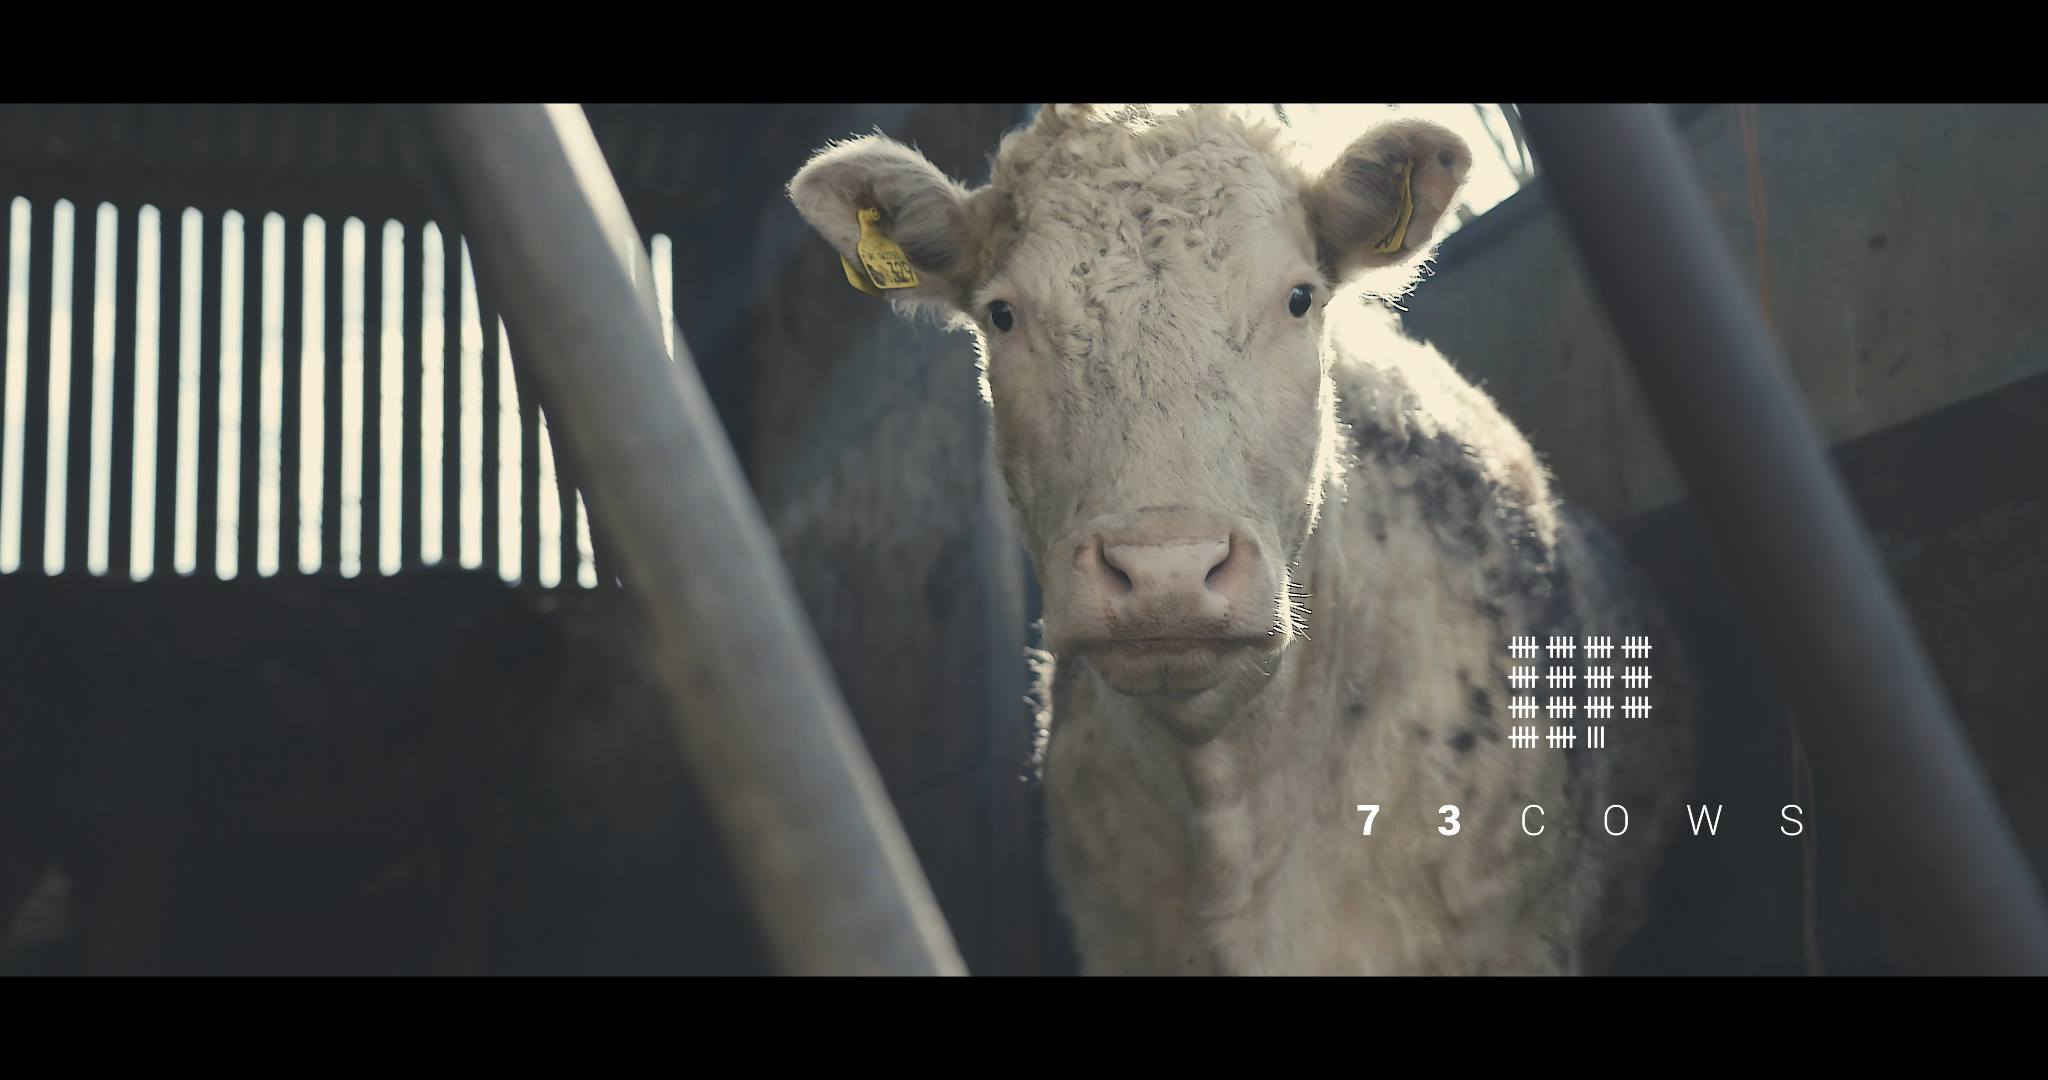 Alex Lockwood | 73 Cows